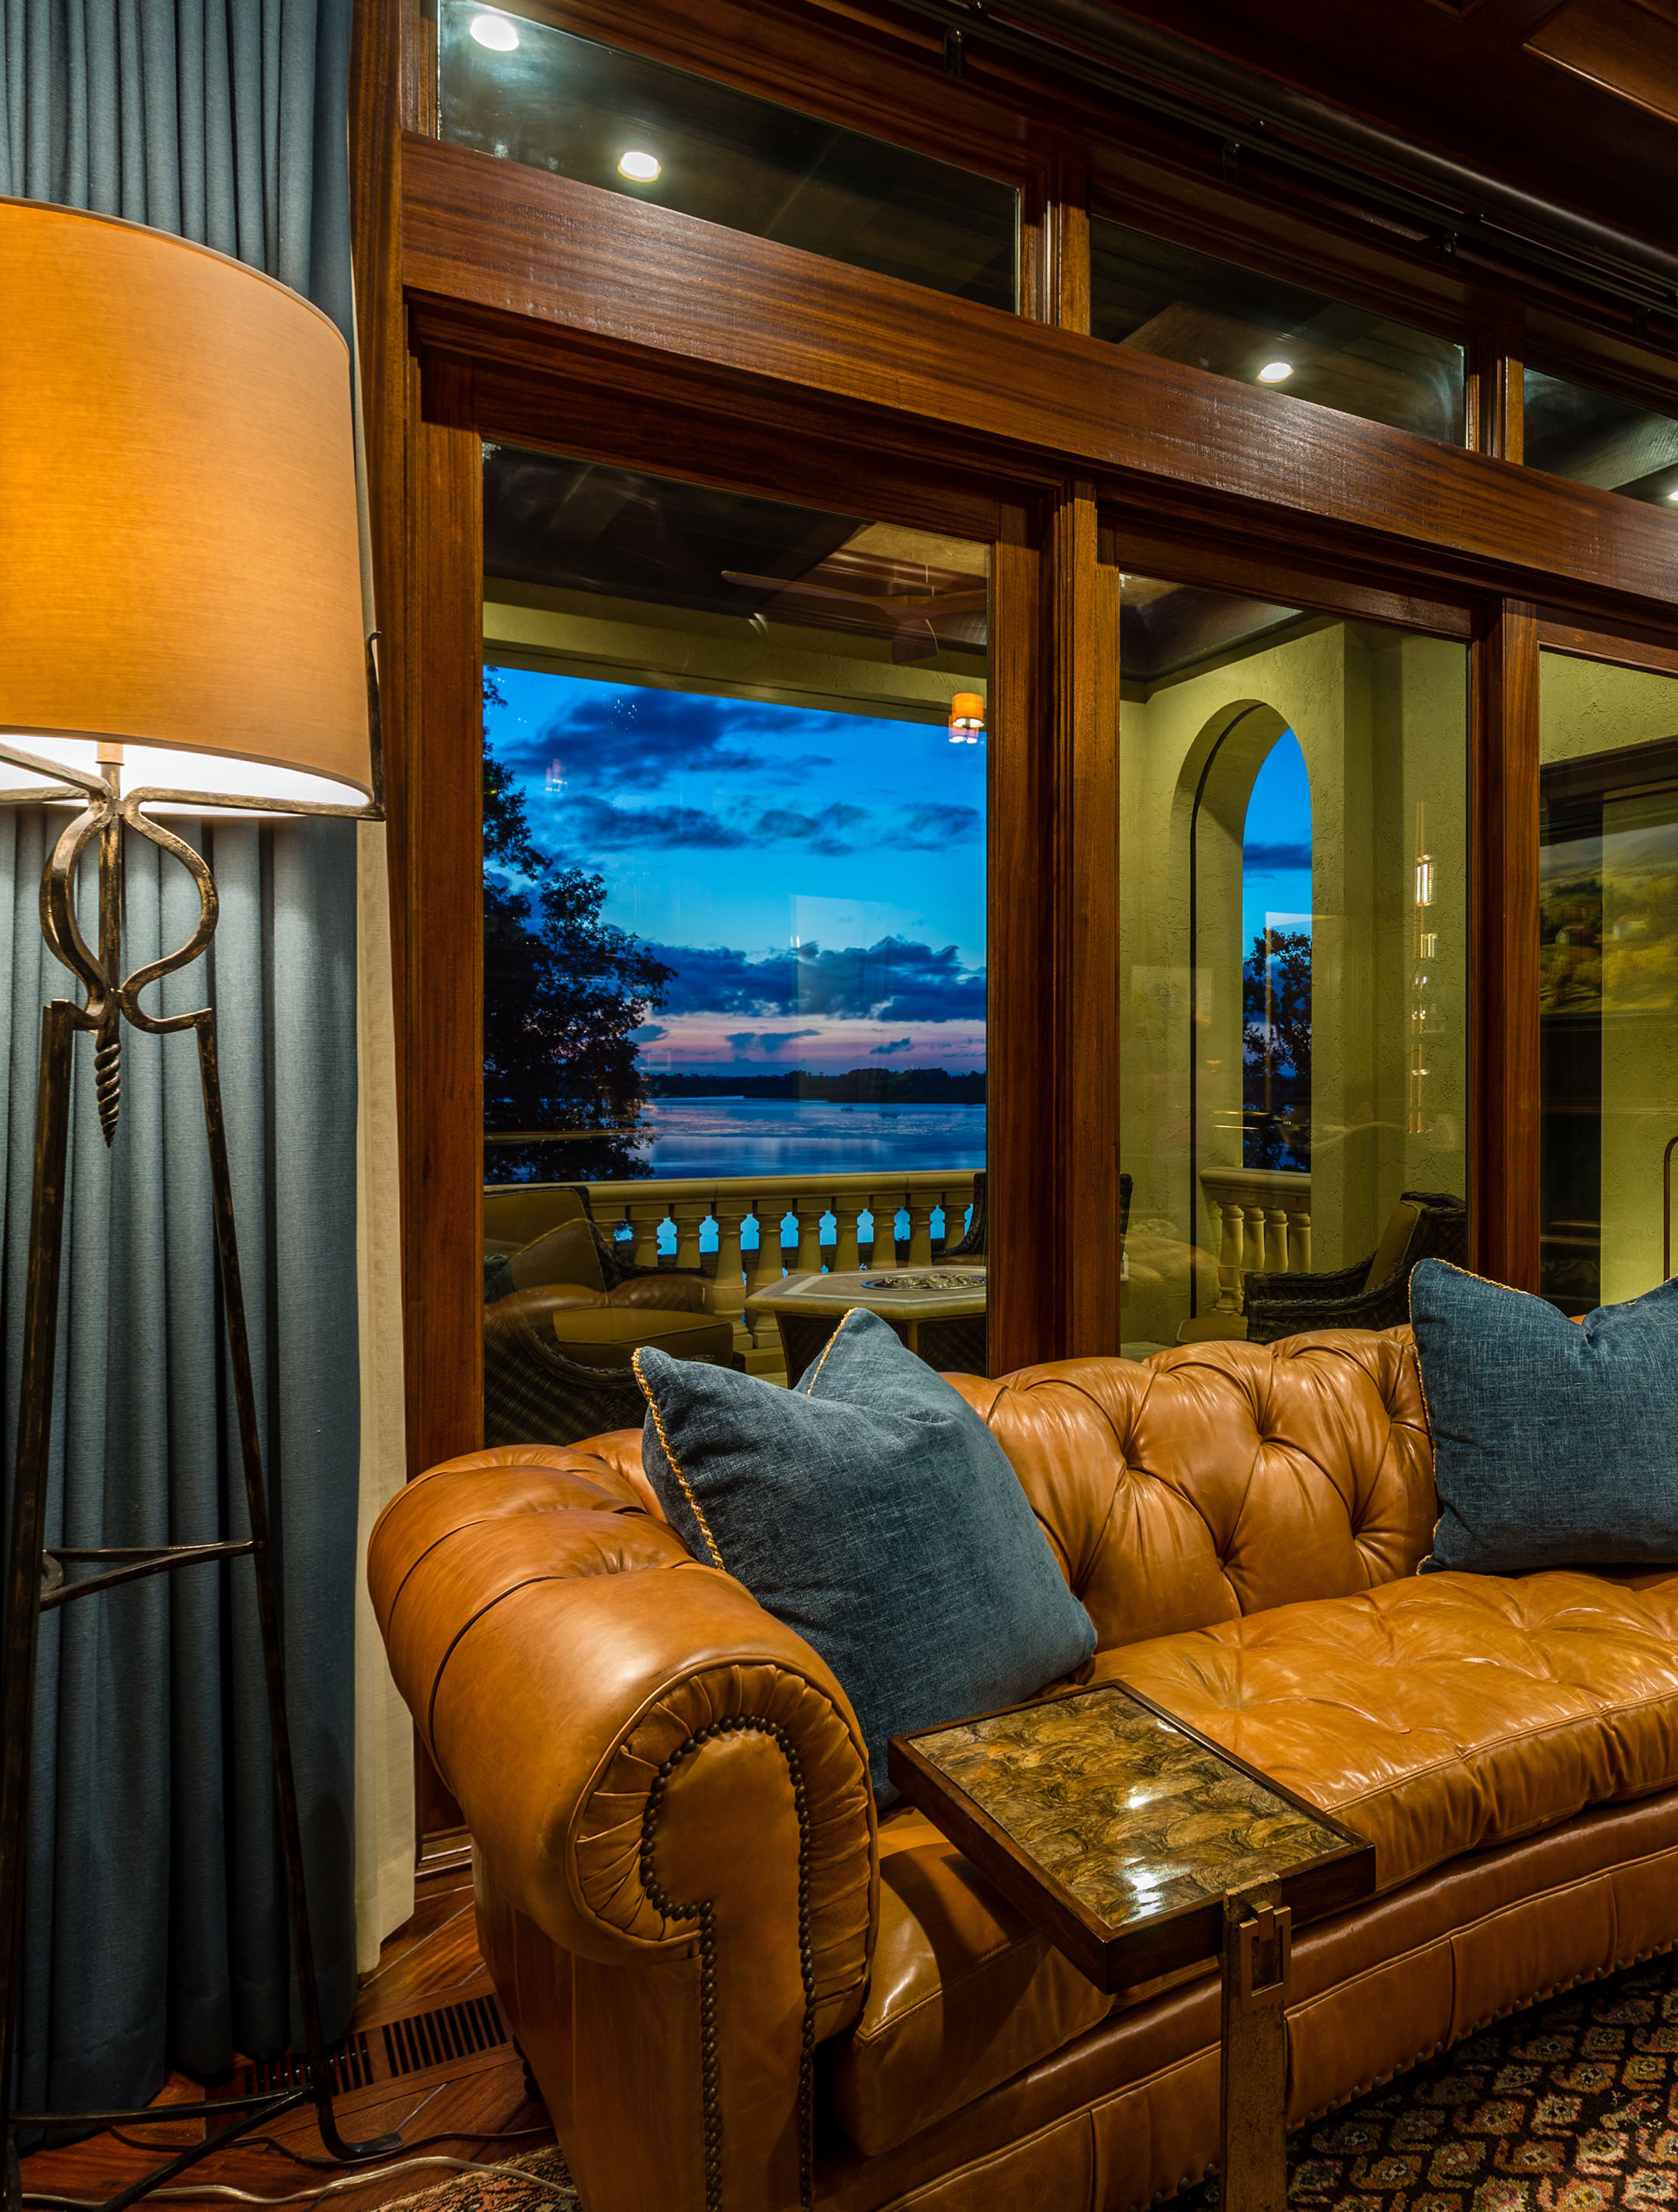 Ted Miles Photography shoots architectural interior design projects